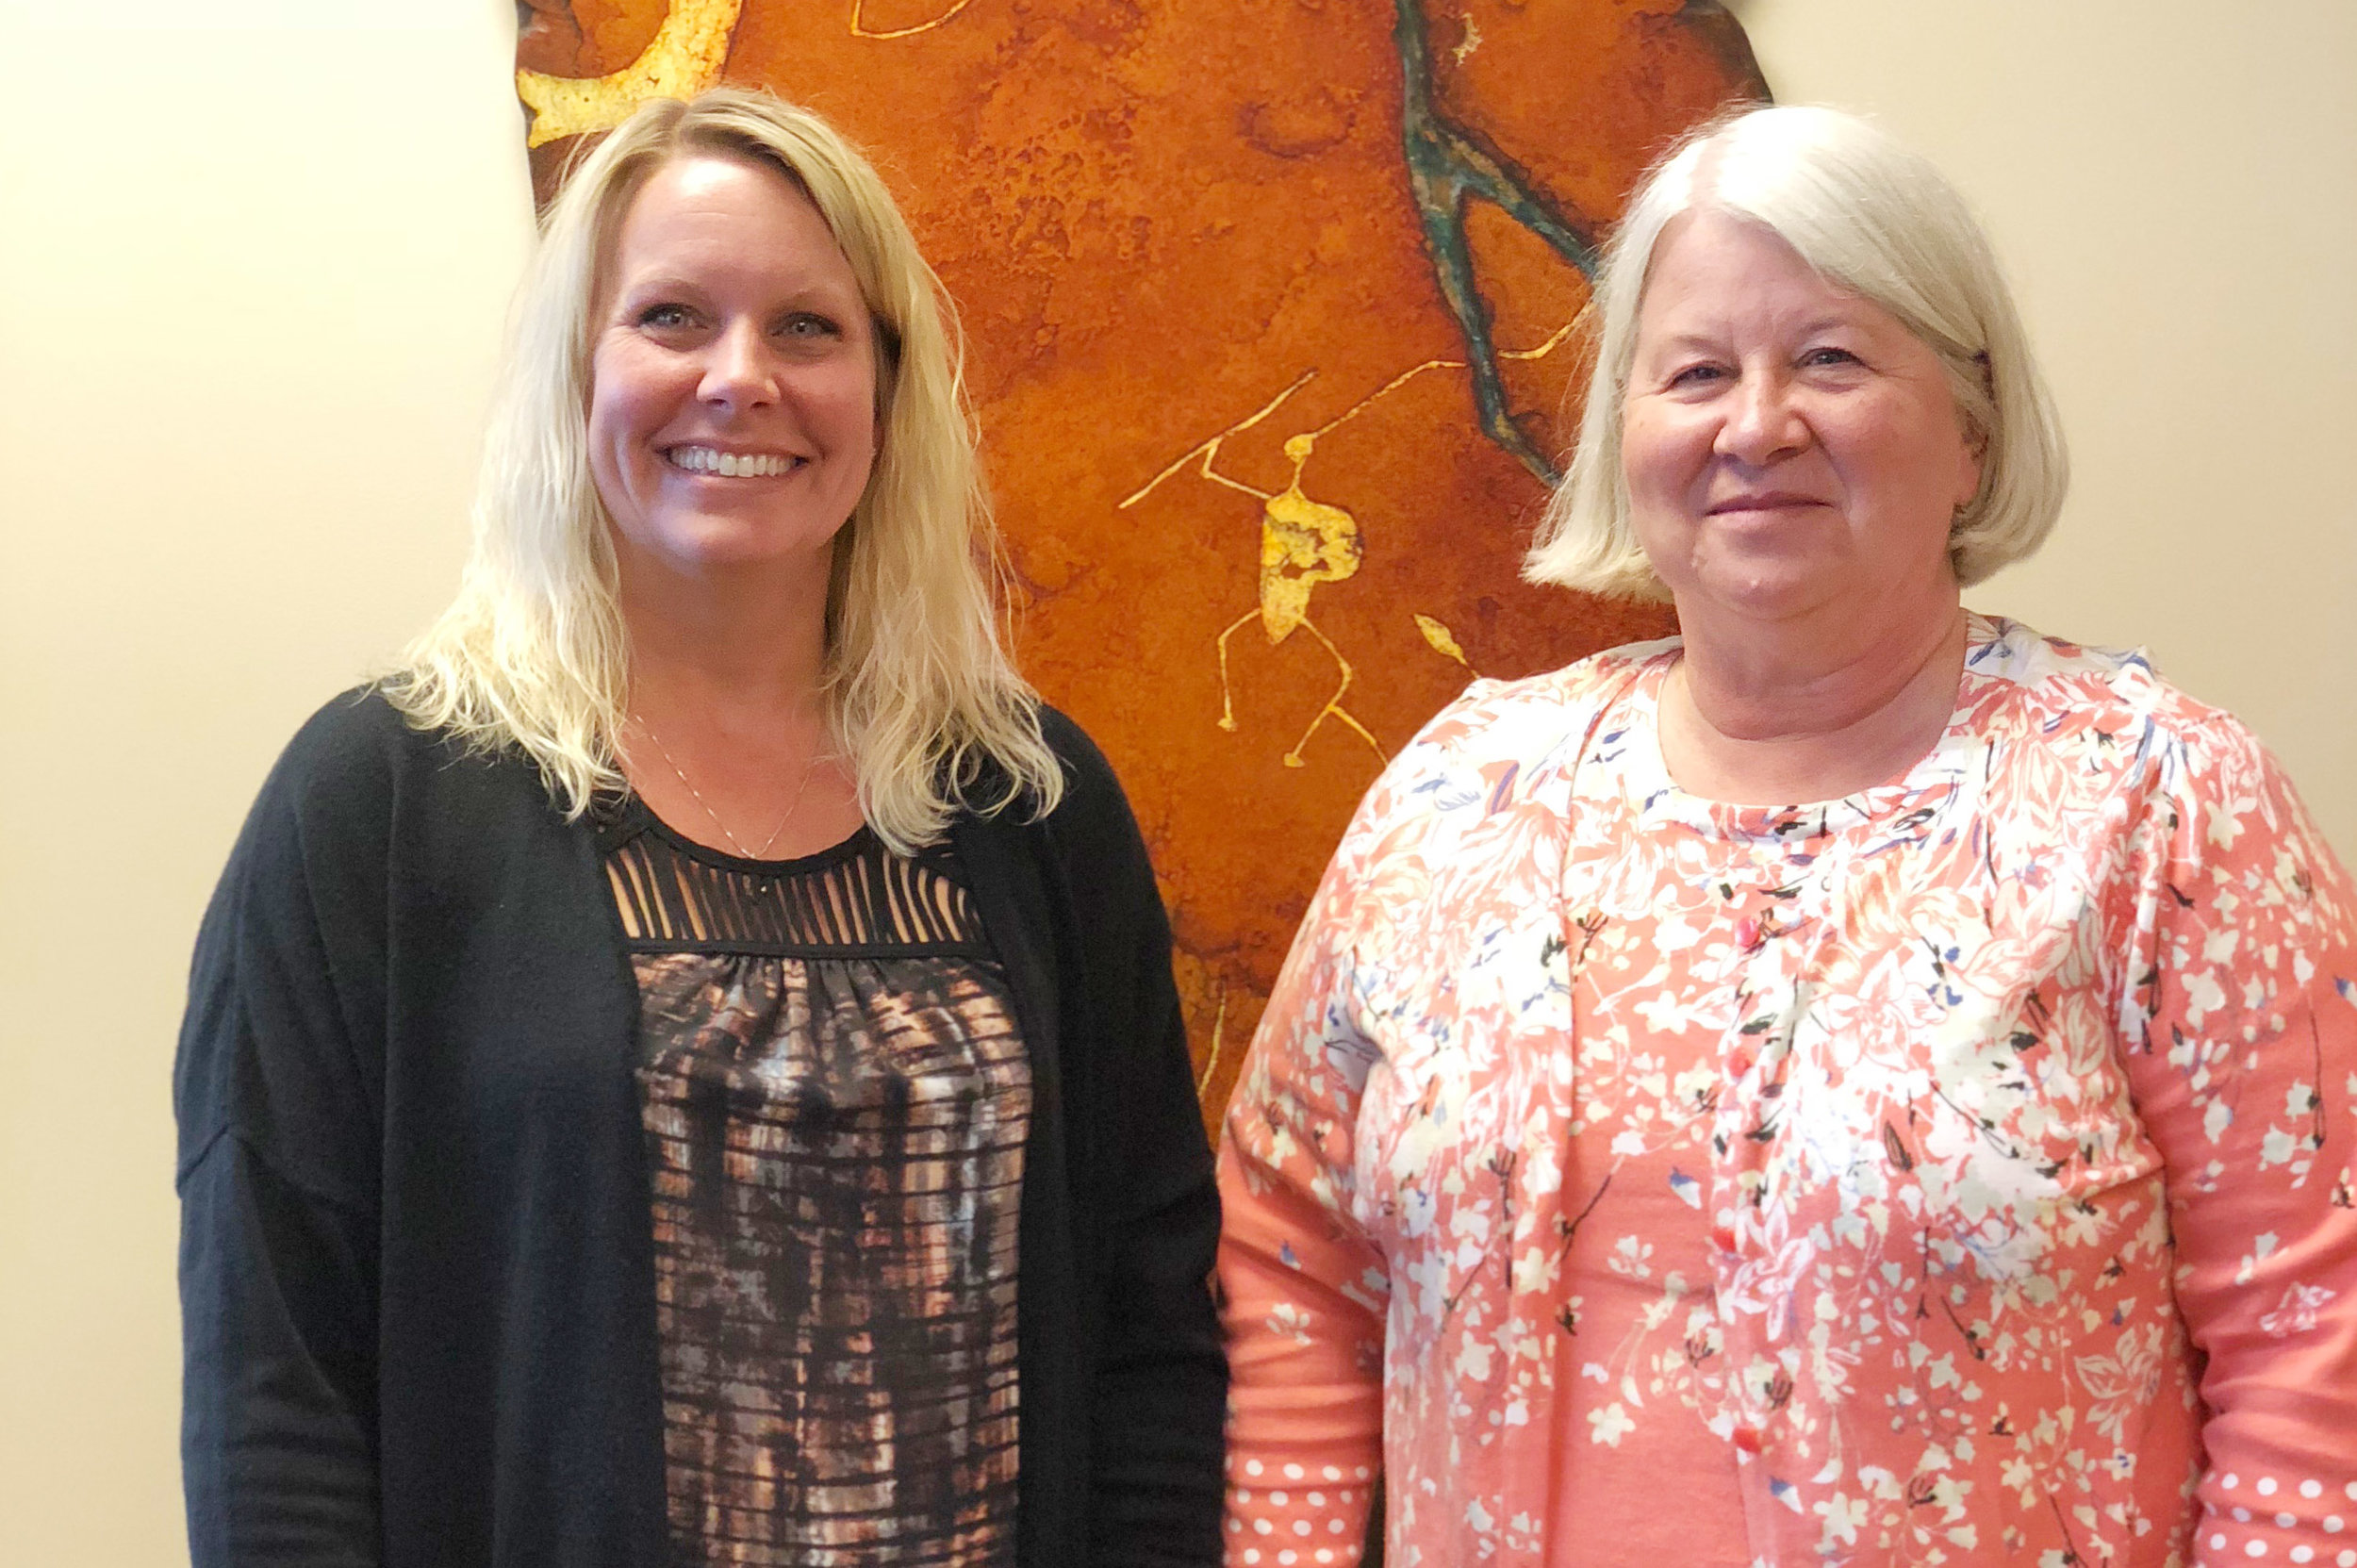 Lisa Spanel, administrative assistant and Char Martins, RN, office manager and registered nurse